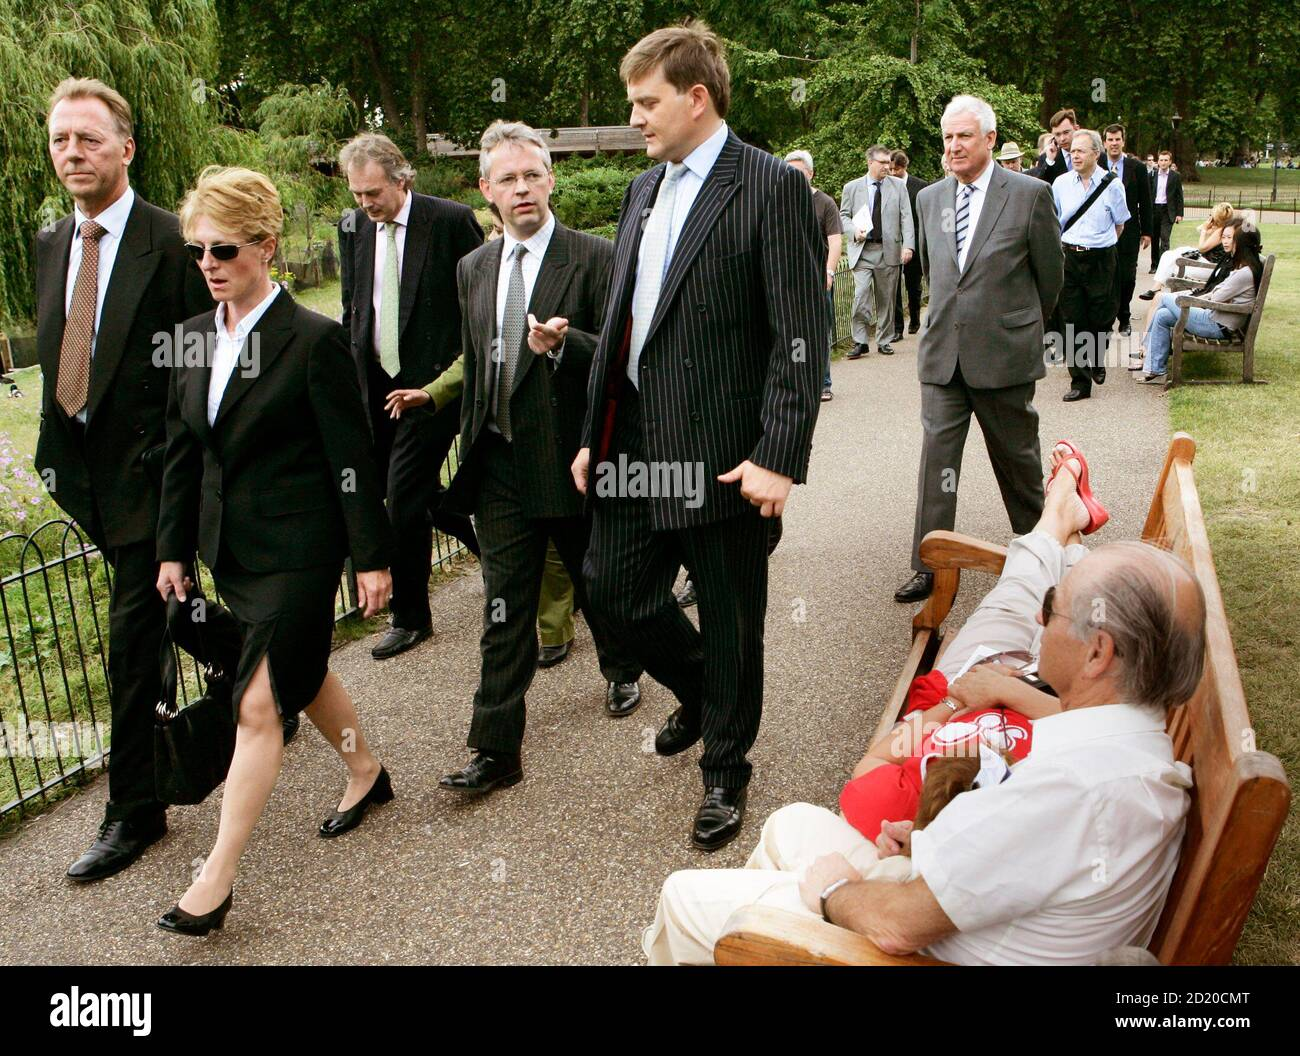 Former Natwest banker David Bermingham (4th L) is seen before marching to the UK Home Office headquarters in London, June 29, 2006. Three bankers face extradition to the United States in a matter of days to face Enron-related fraud charges that could force them to sell their houses to cover legal costs, one of the three said on Wednesday. Bermingham, one of the former Natwest bankers, said they were now resigned to being extradited after battling for more than a year to have their case investigated in Britain. REUTERS/David Moir (BRITAIN) Banque D'Images